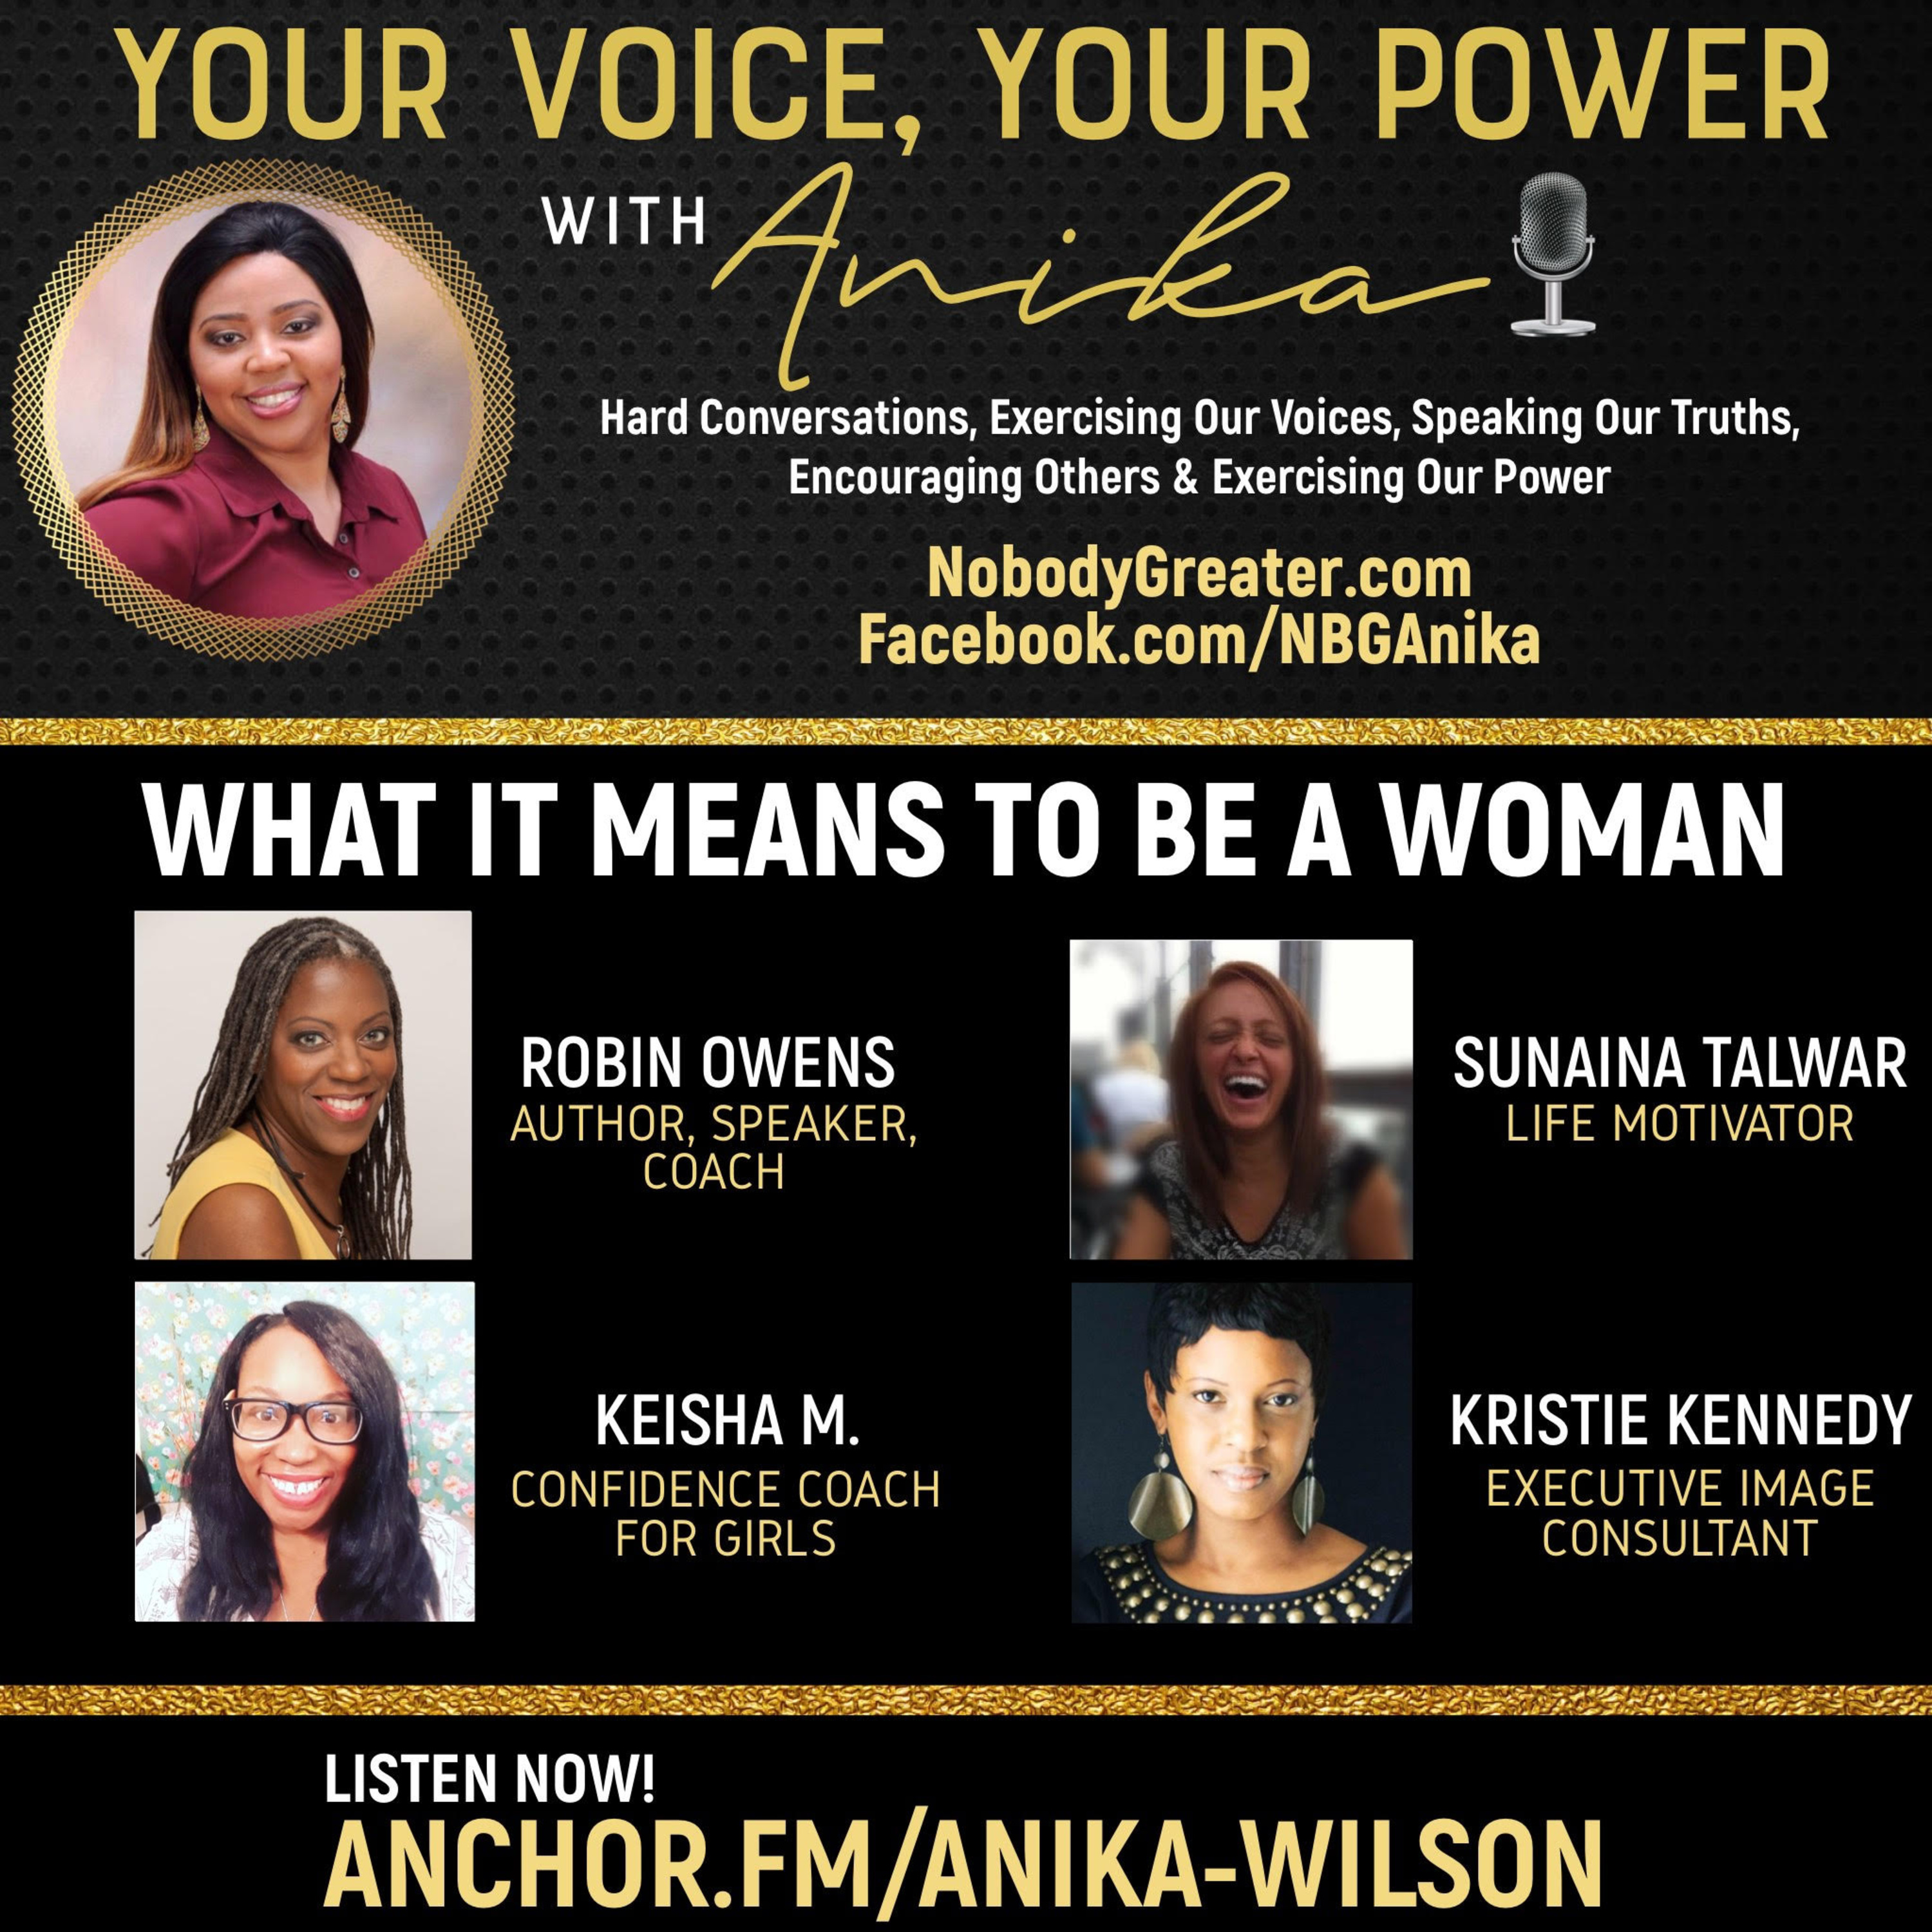 What It Means to Be A Woman-A Powerful Conversation about the Common Perceptions of Womanhood.